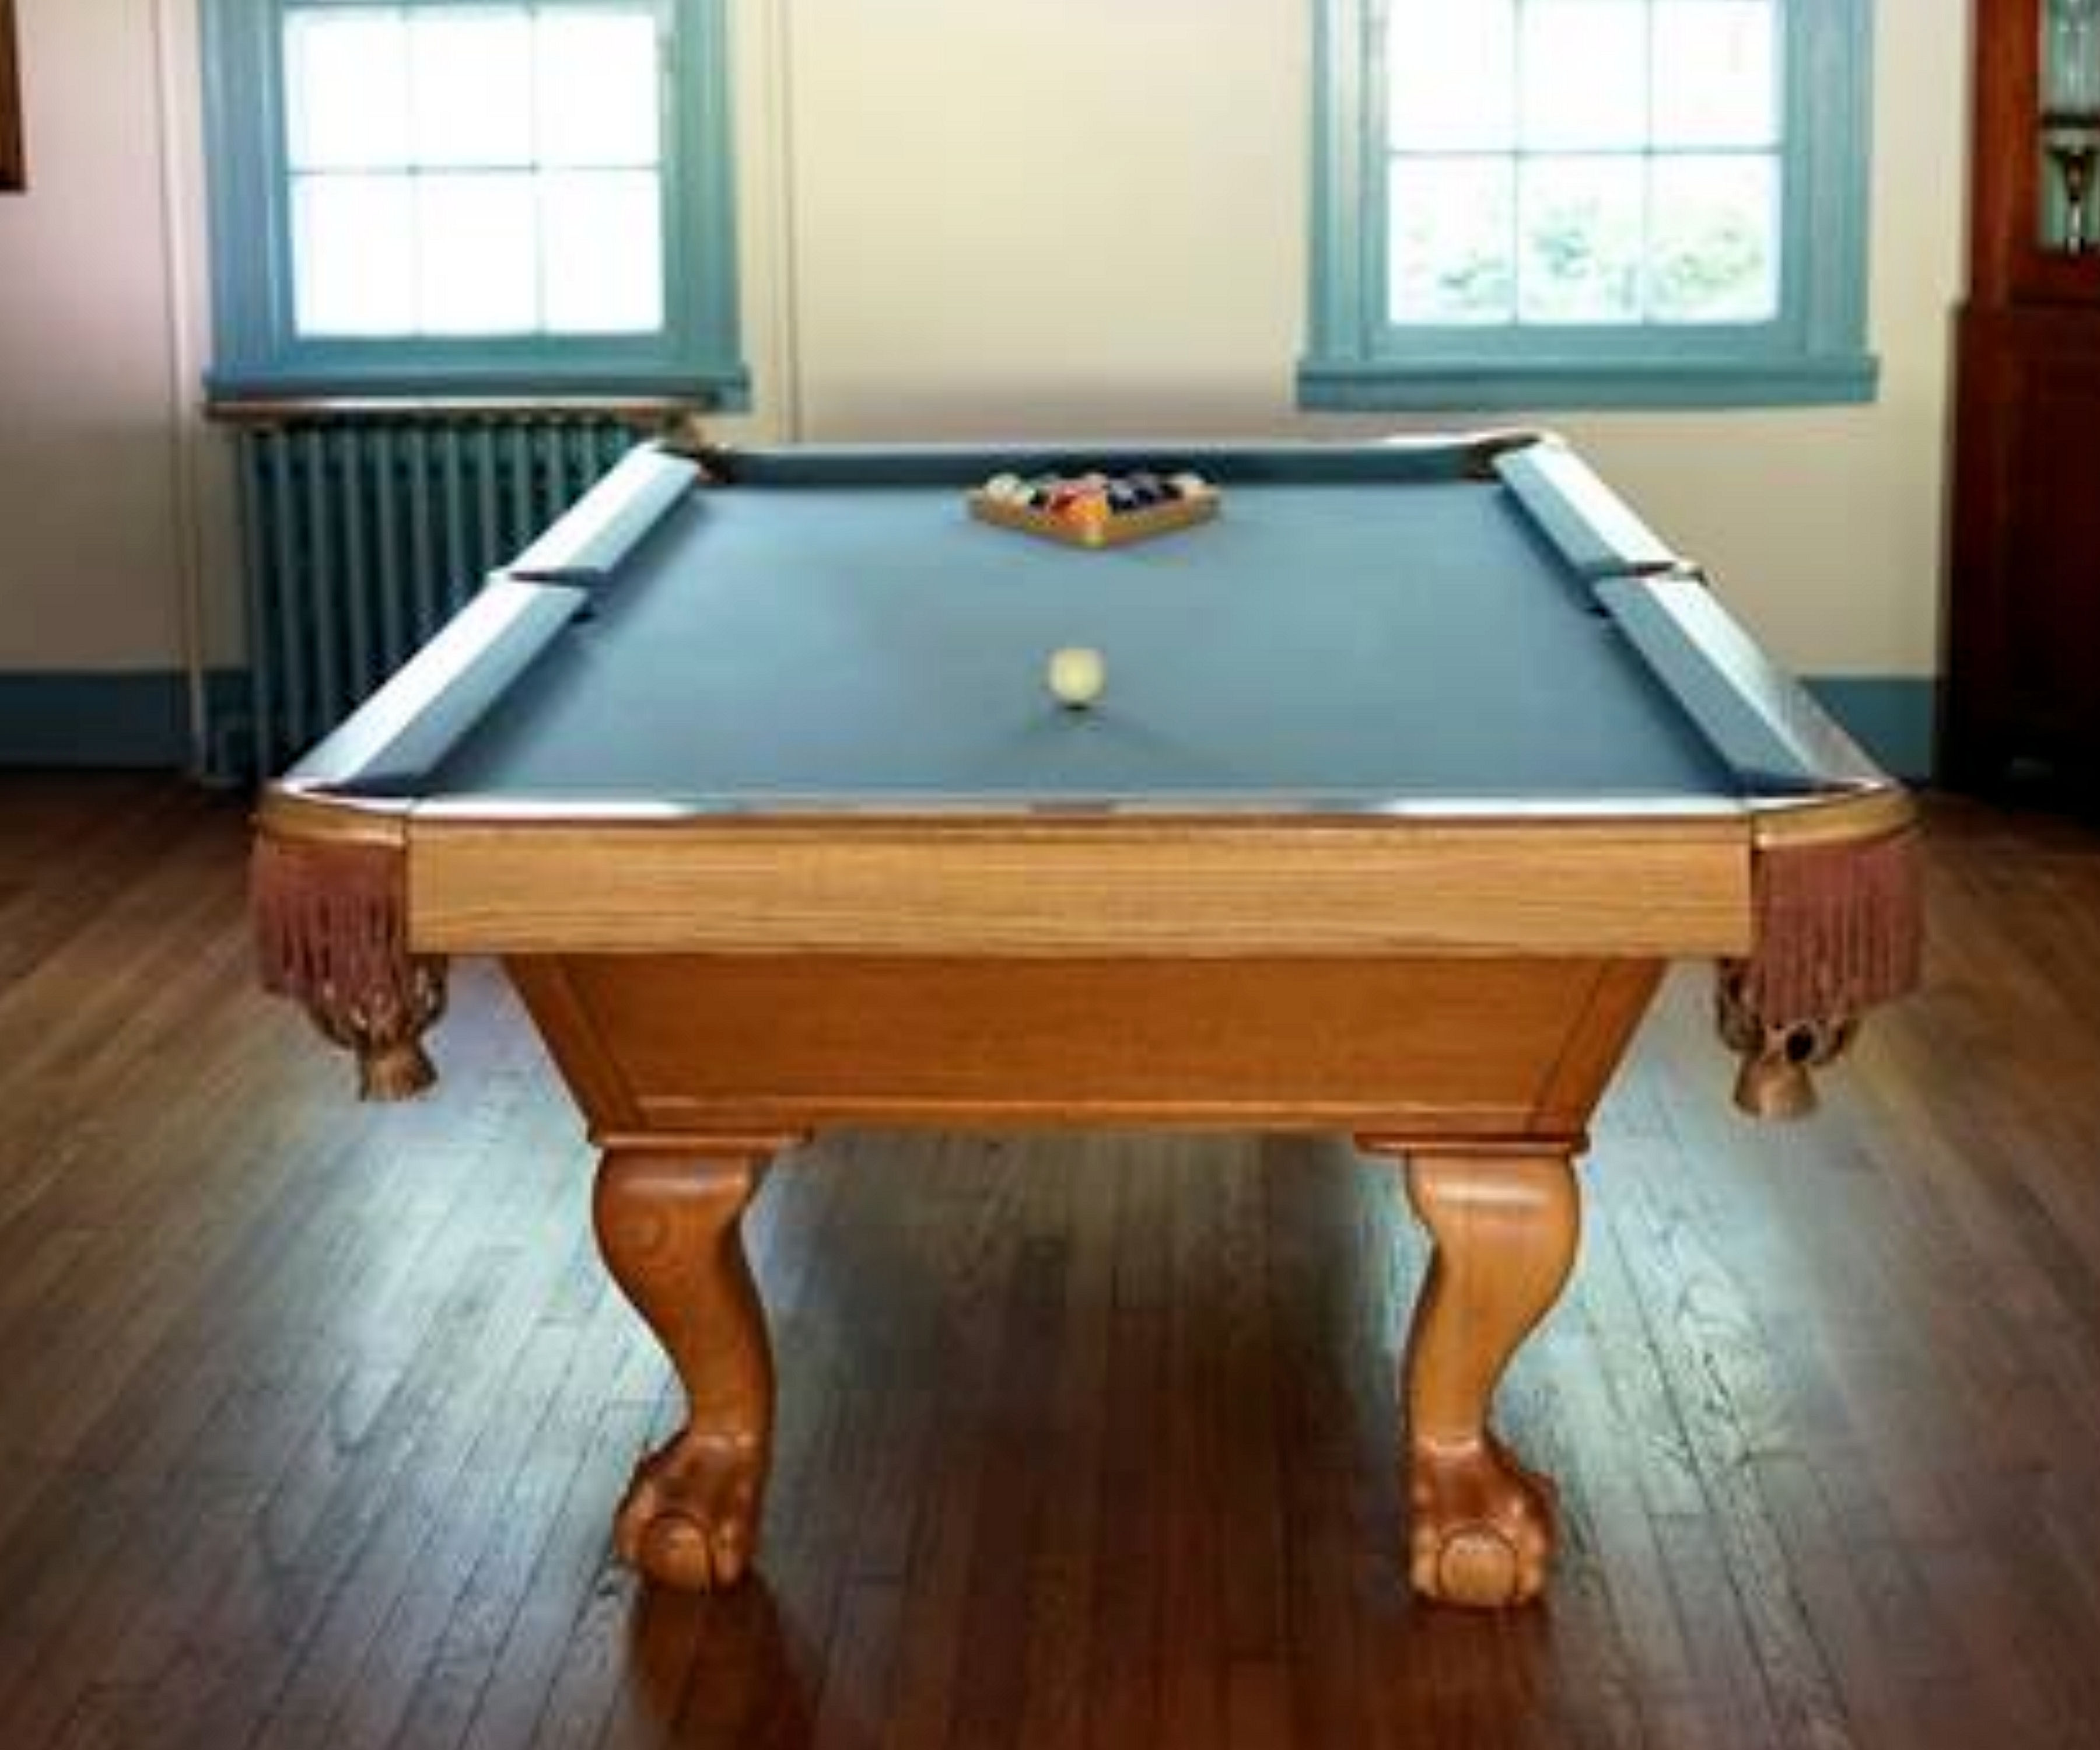 SOLD Pre Owned Ft Brunswick Pool Table IMMEDIATE DELIVERY - 8ft brunswick pool table